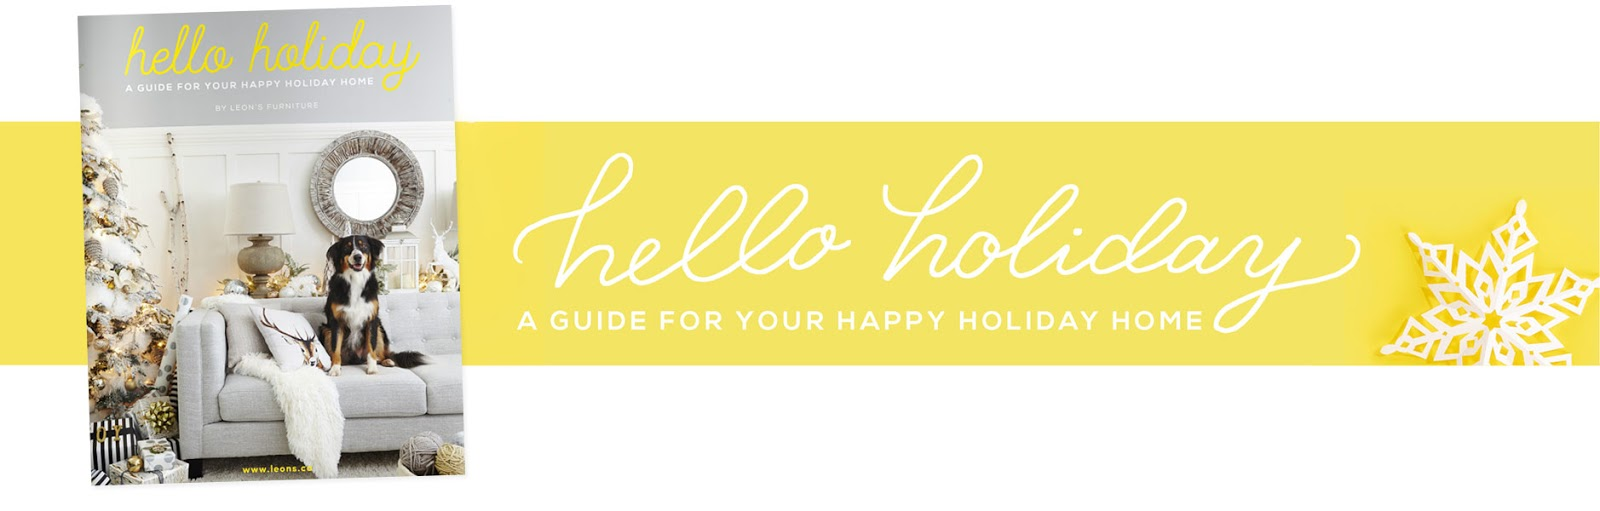 Leon's Hello Holiday Guide